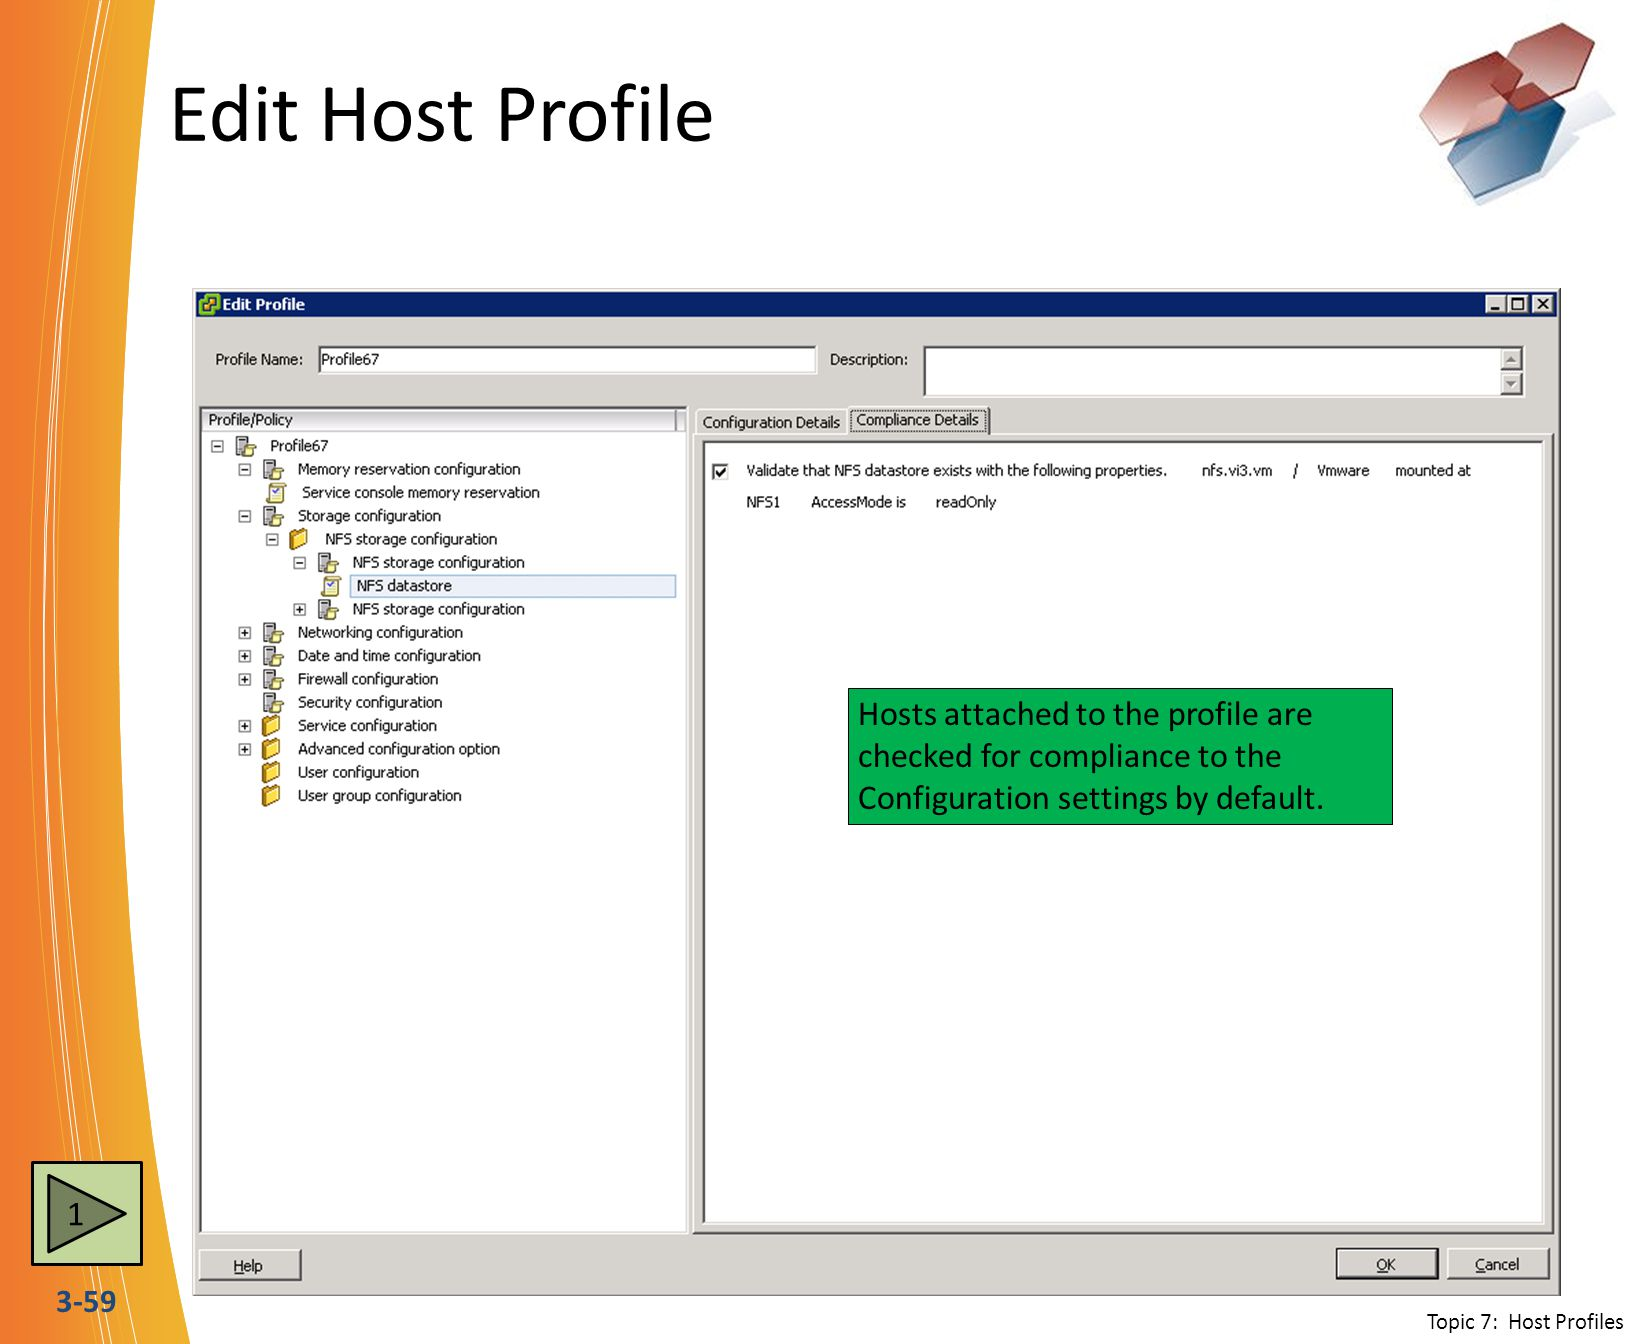 Edit Host Profile Hosts attached to the profile are checked for compliance to the Configuration settings by default.